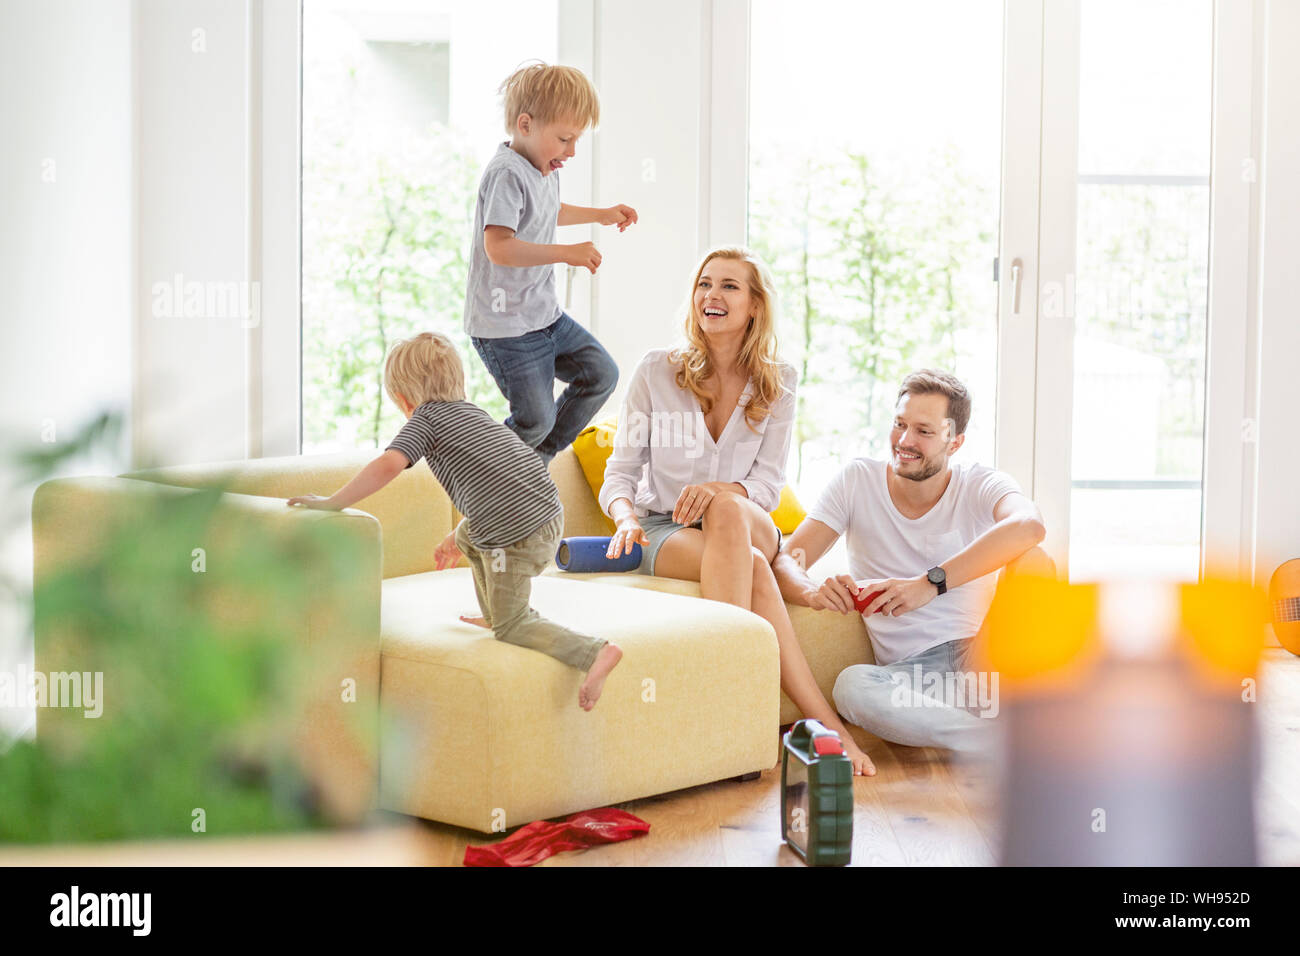 Happy family in living room of their new home with boys romping about Stock Photo